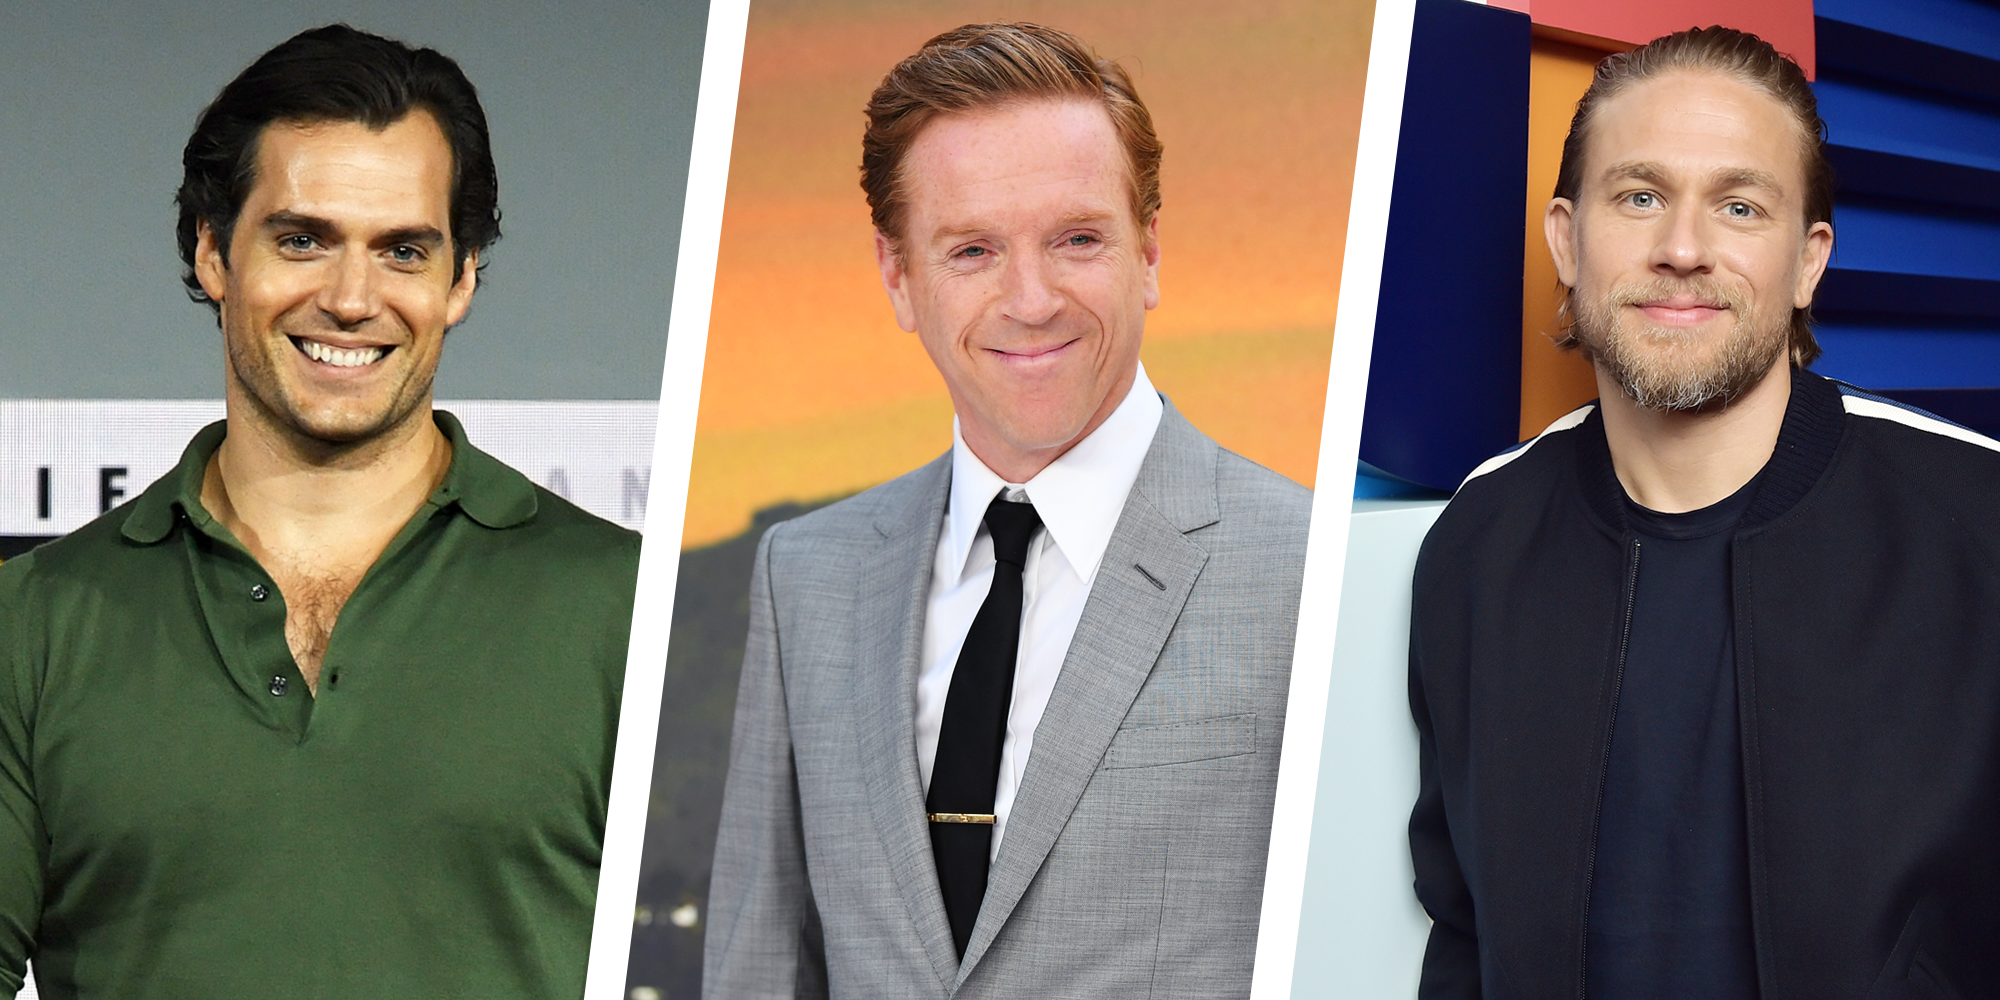 40 Actors You Probably Didn't Know Were British